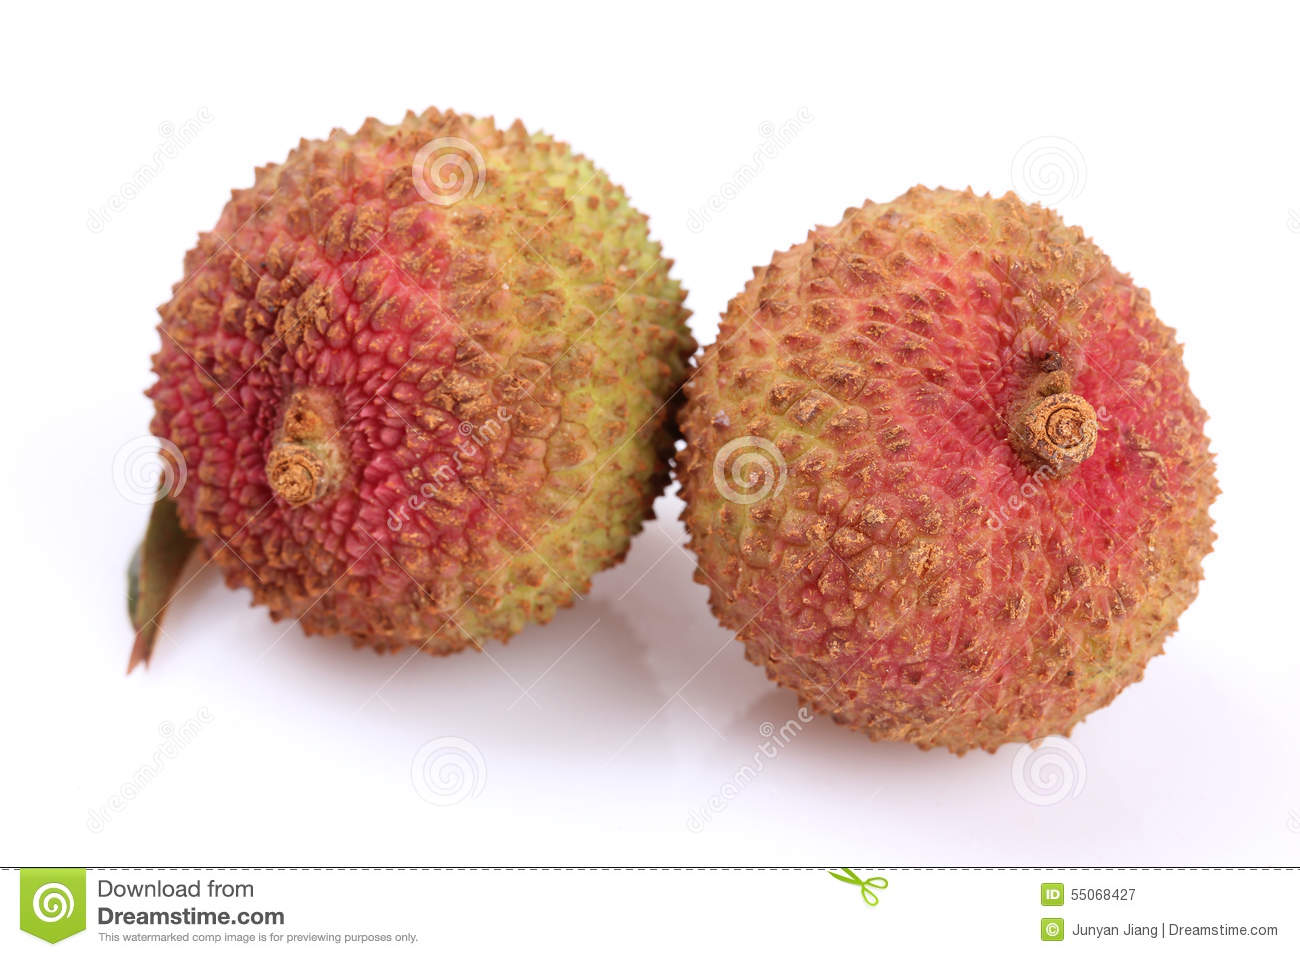 Litchi chinensis fruits clipart #9